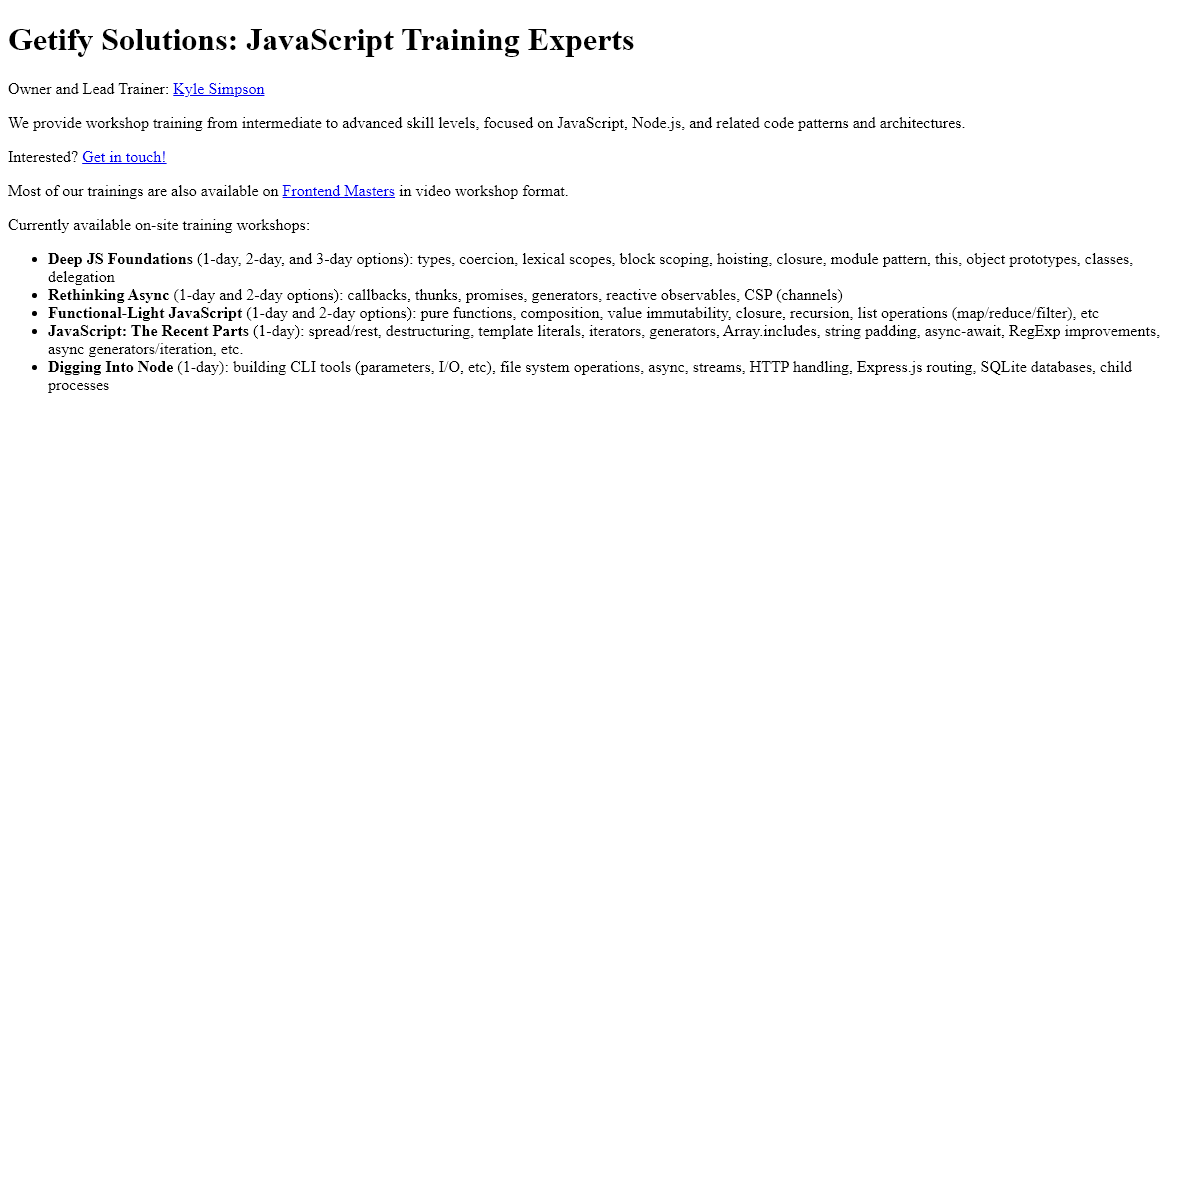 Getify Solutions- JavaScript Training Experts